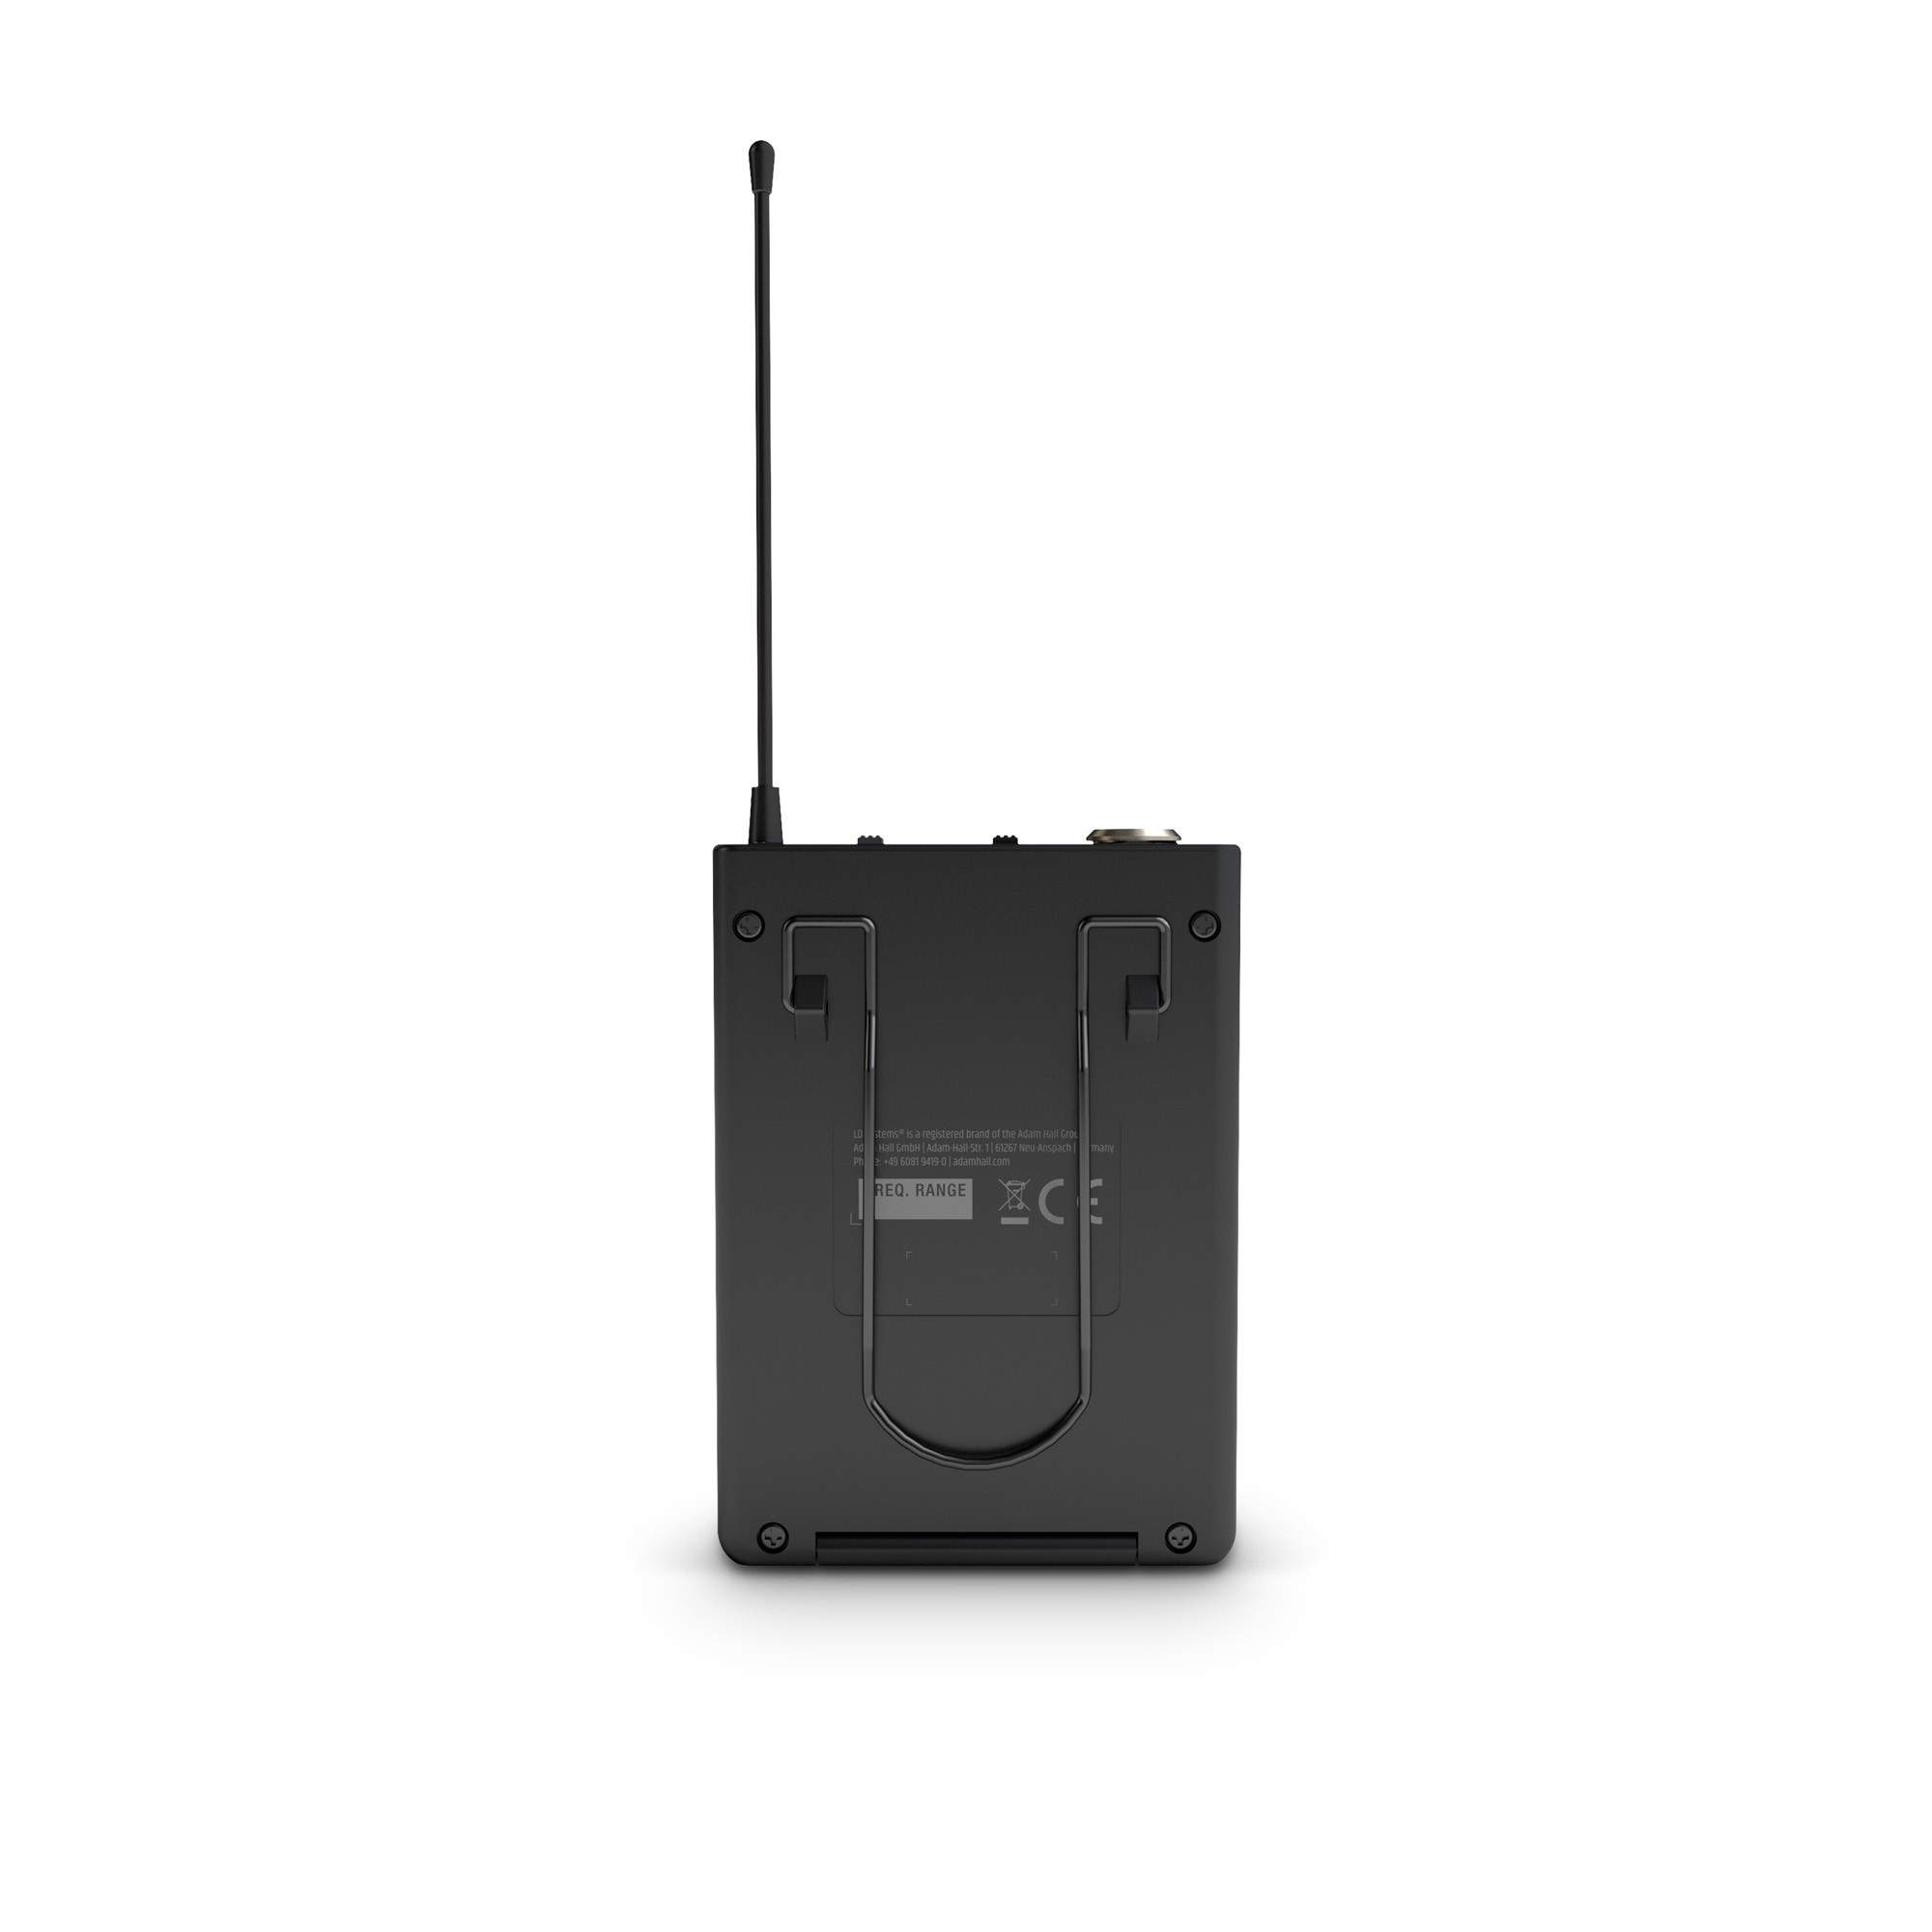 U308 BPH Wireless Microphone System with Bodypack and Headset